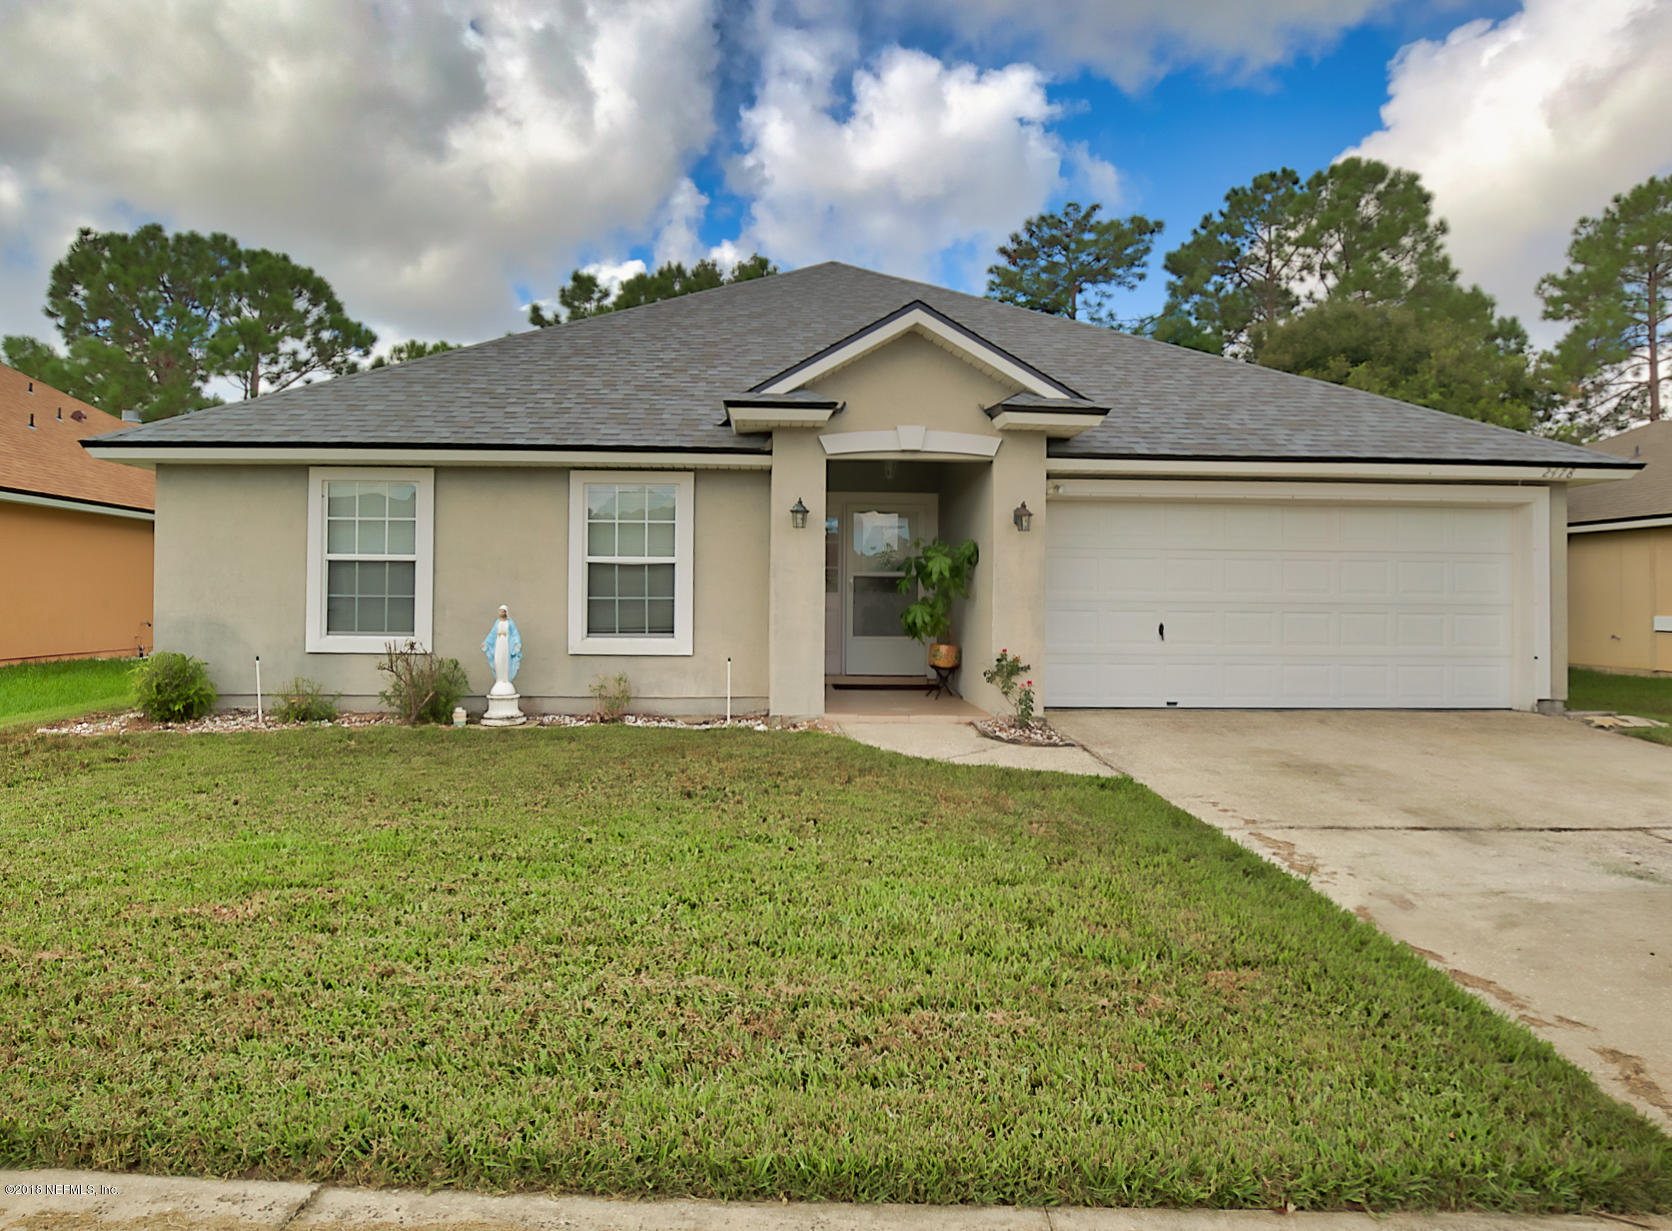 2478 COACHMAN LAKES, JACKSONVILLE, FLORIDA 32246, 4 Bedrooms Bedrooms, ,2 BathroomsBathrooms,Residential - single family,For sale,COACHMAN LAKES,959288